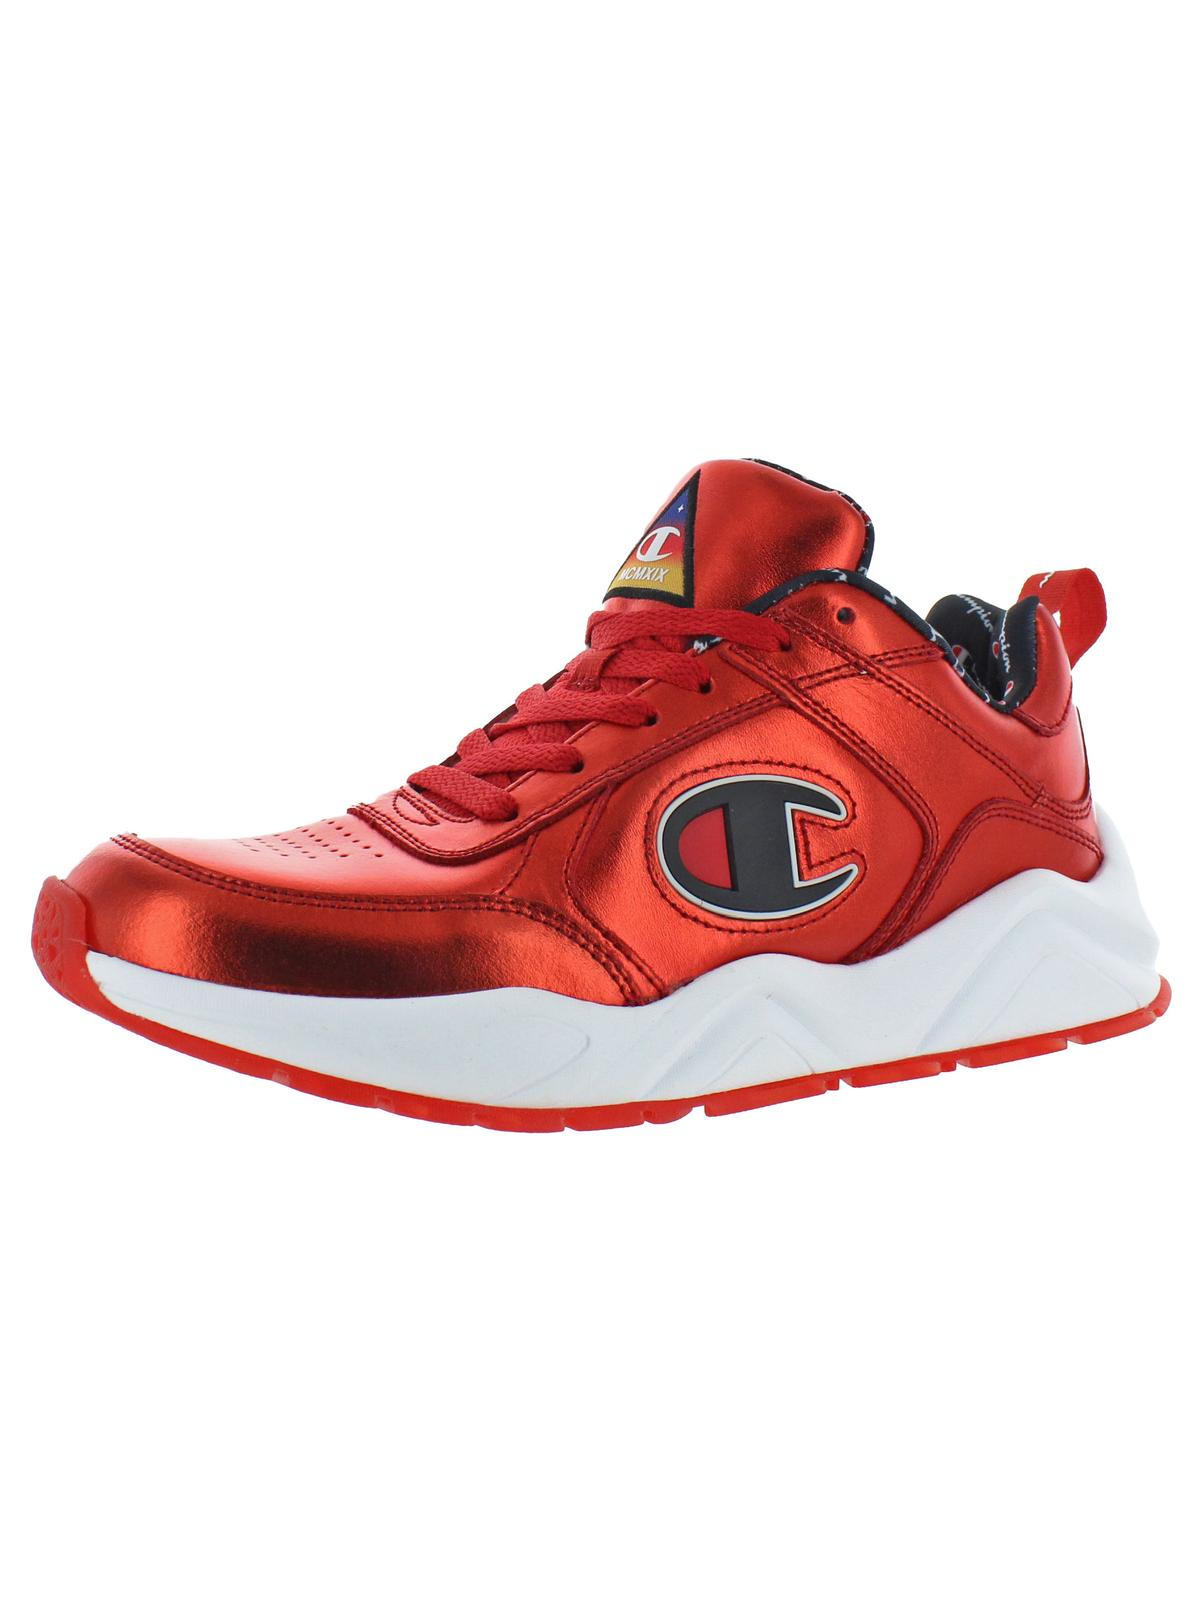 champion high top tennis shoes